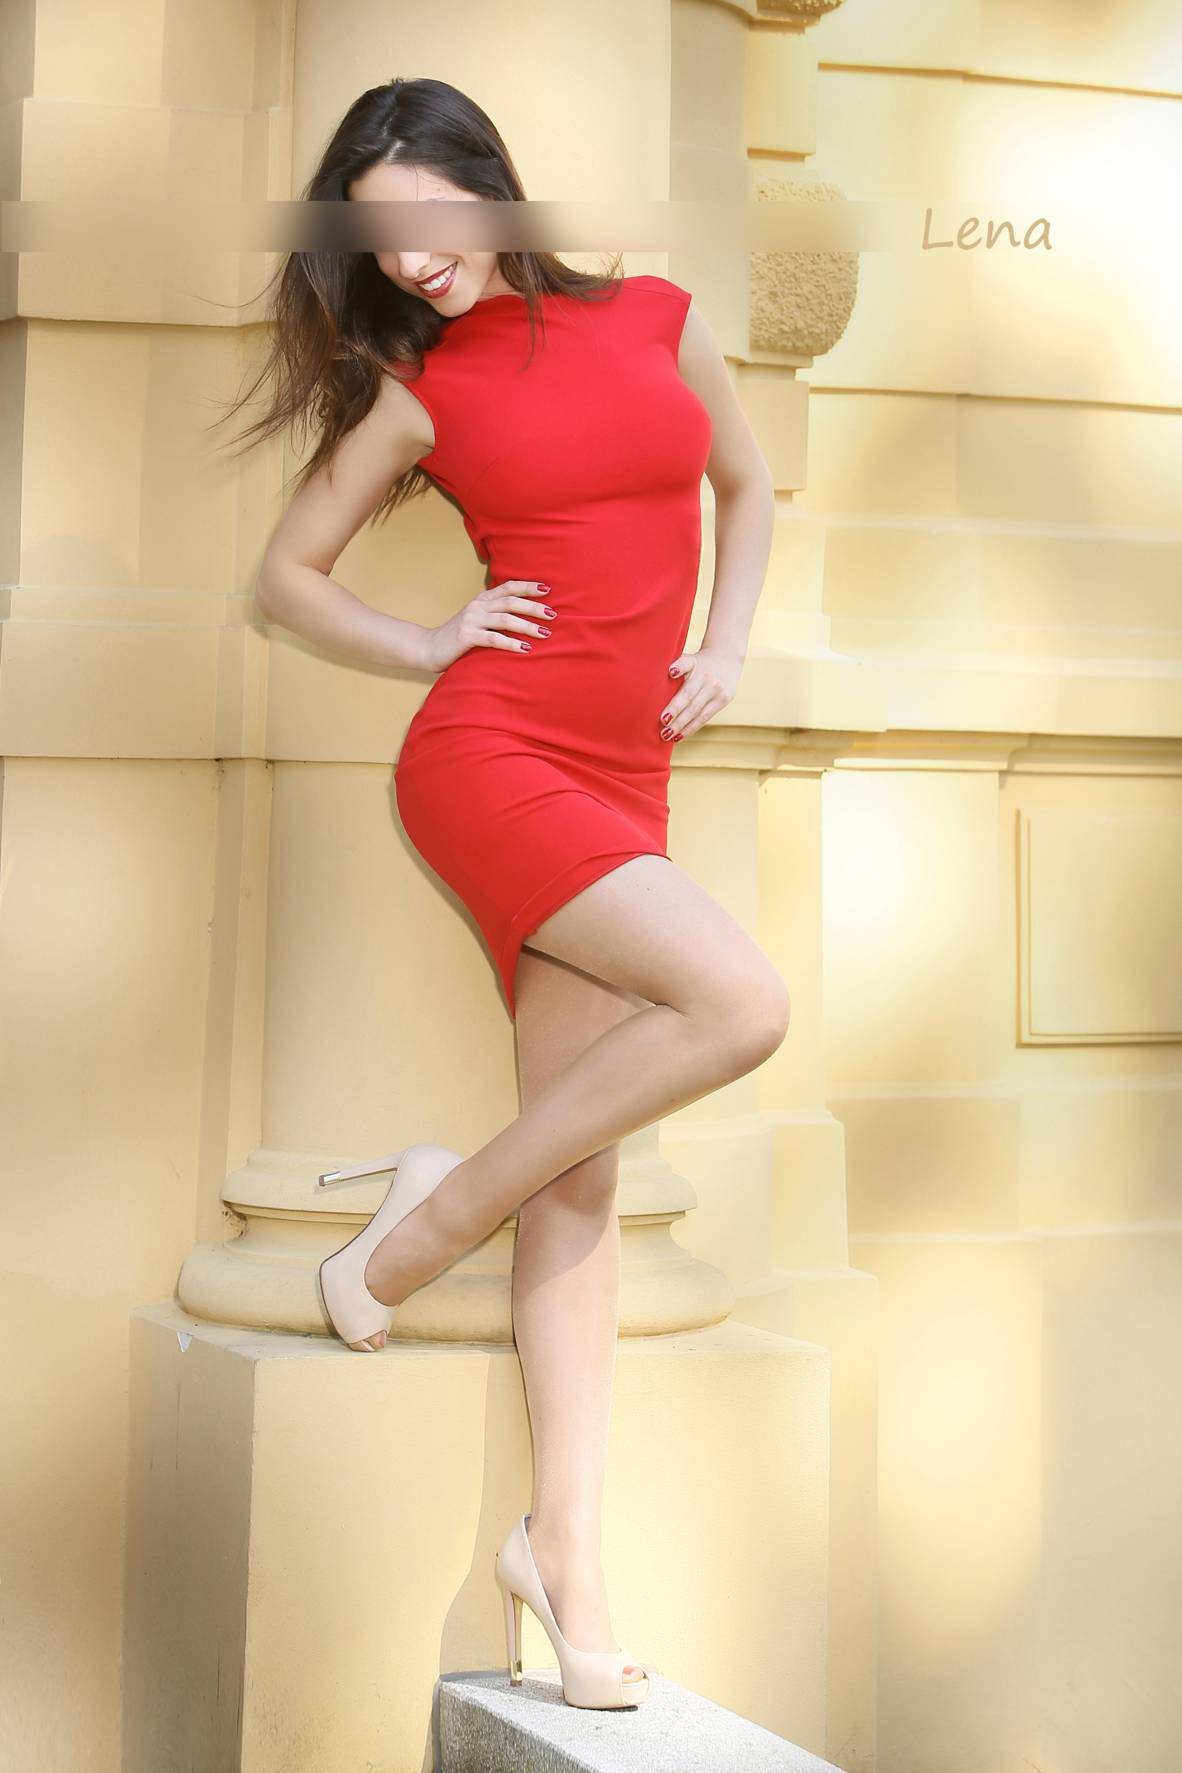 closeup berlin independent escort